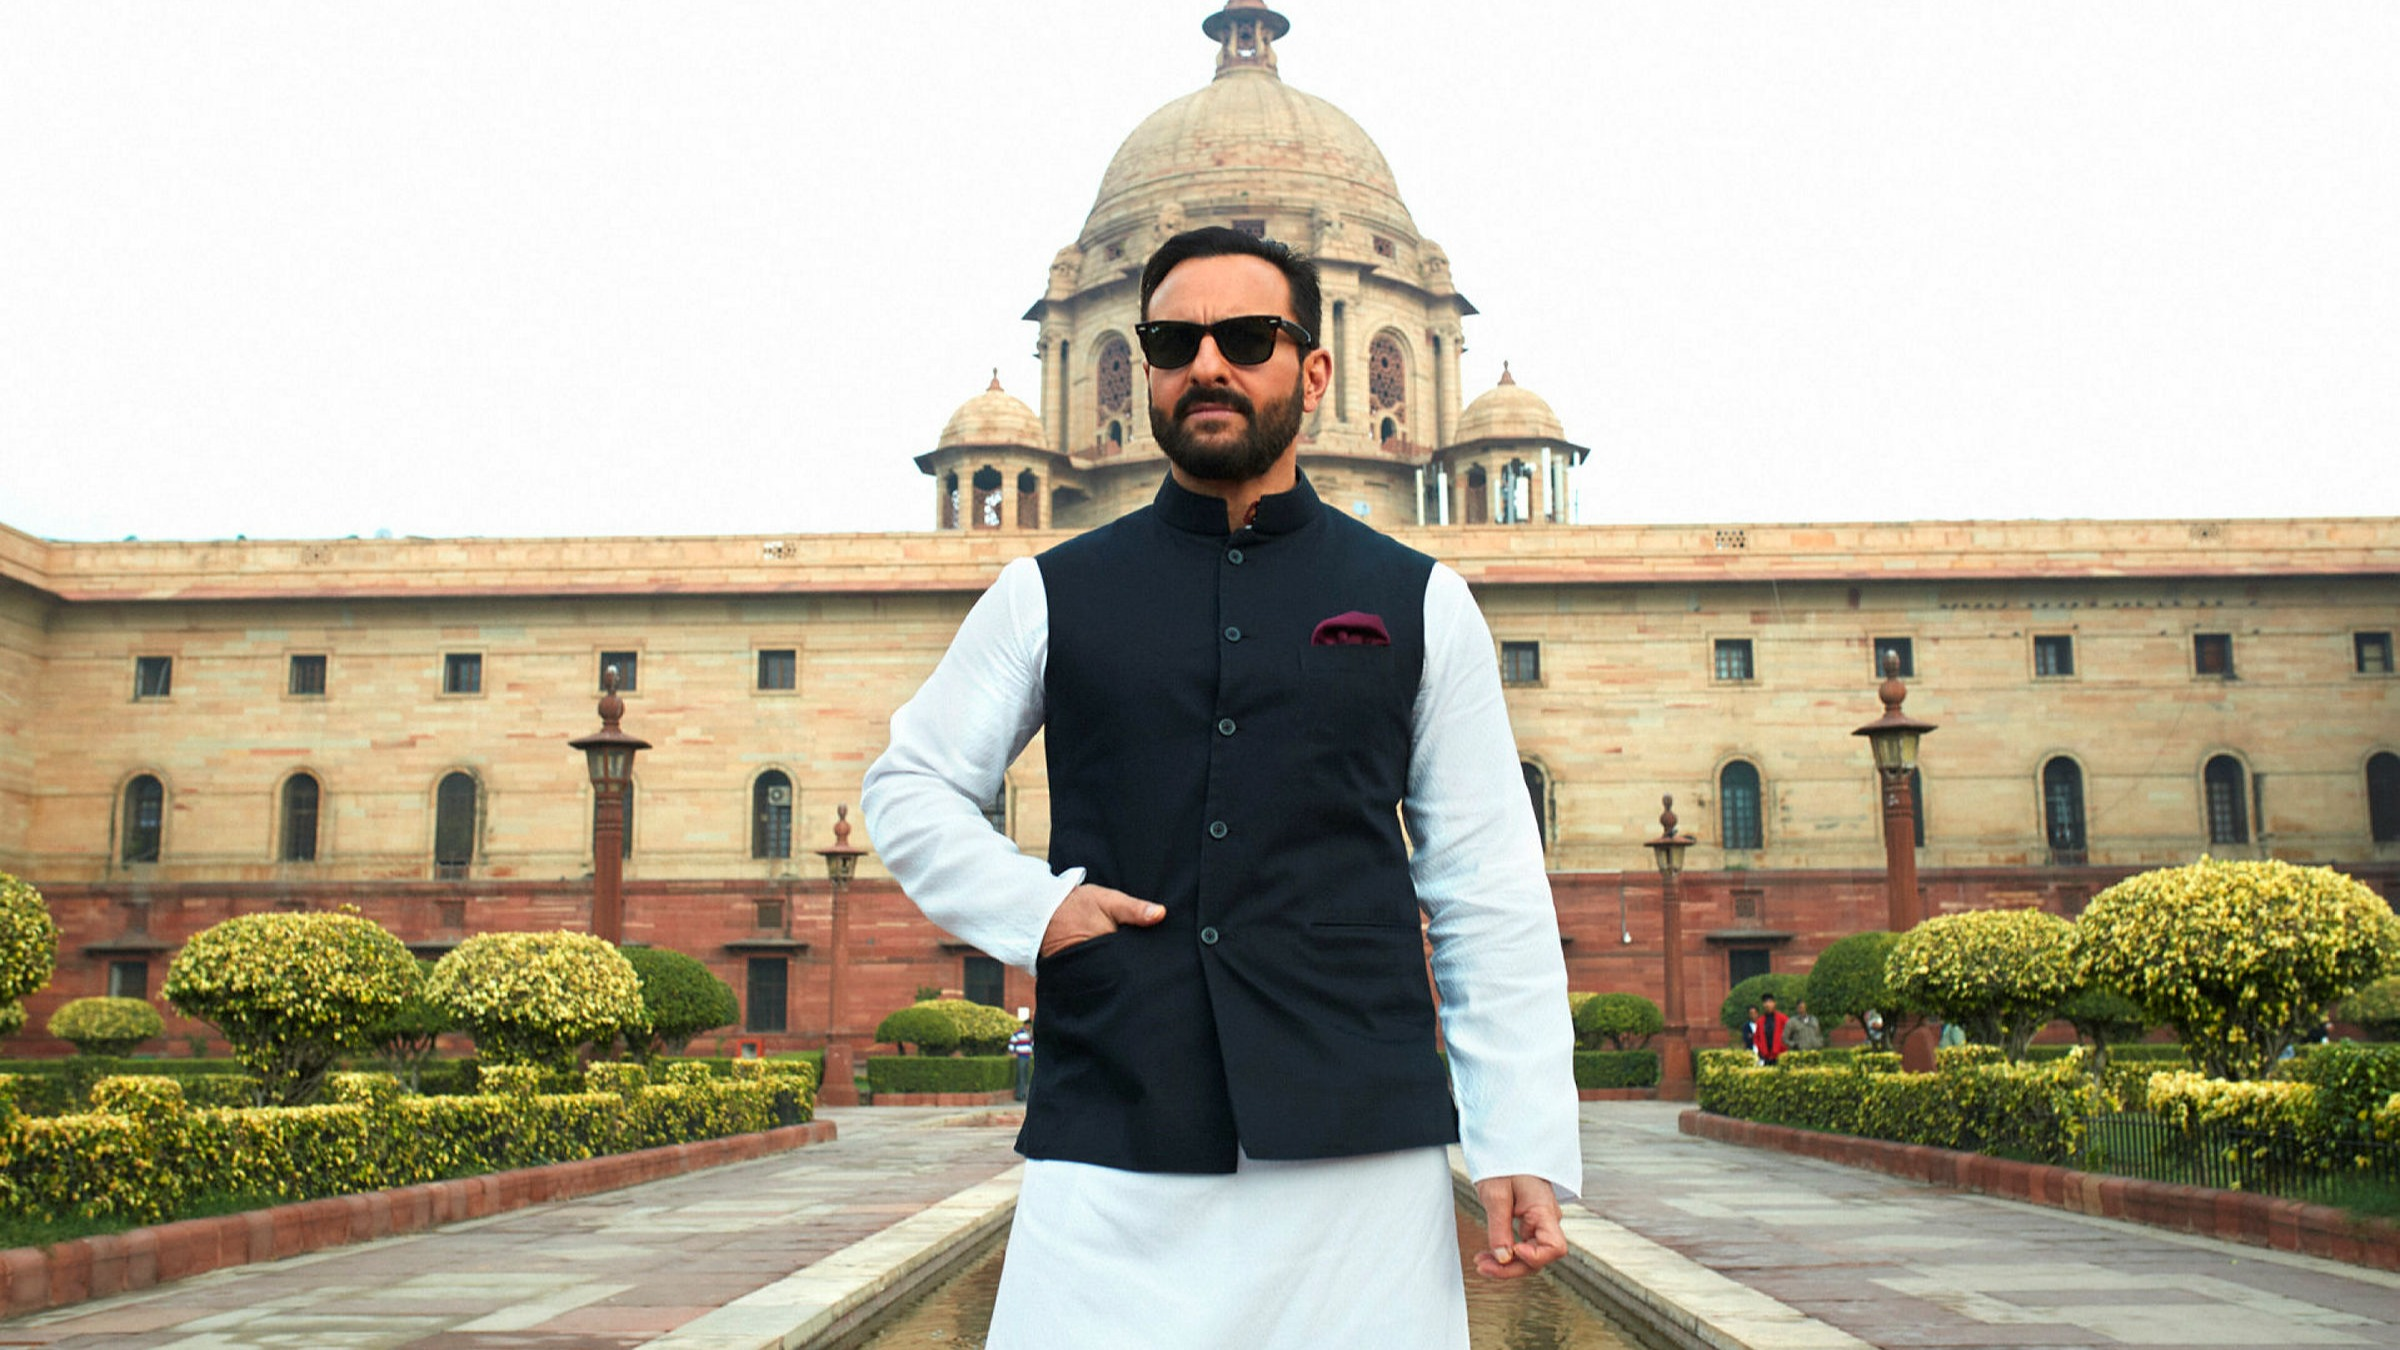 Saif Ali Khan — India's screen prince on getting gritty | Financial Times